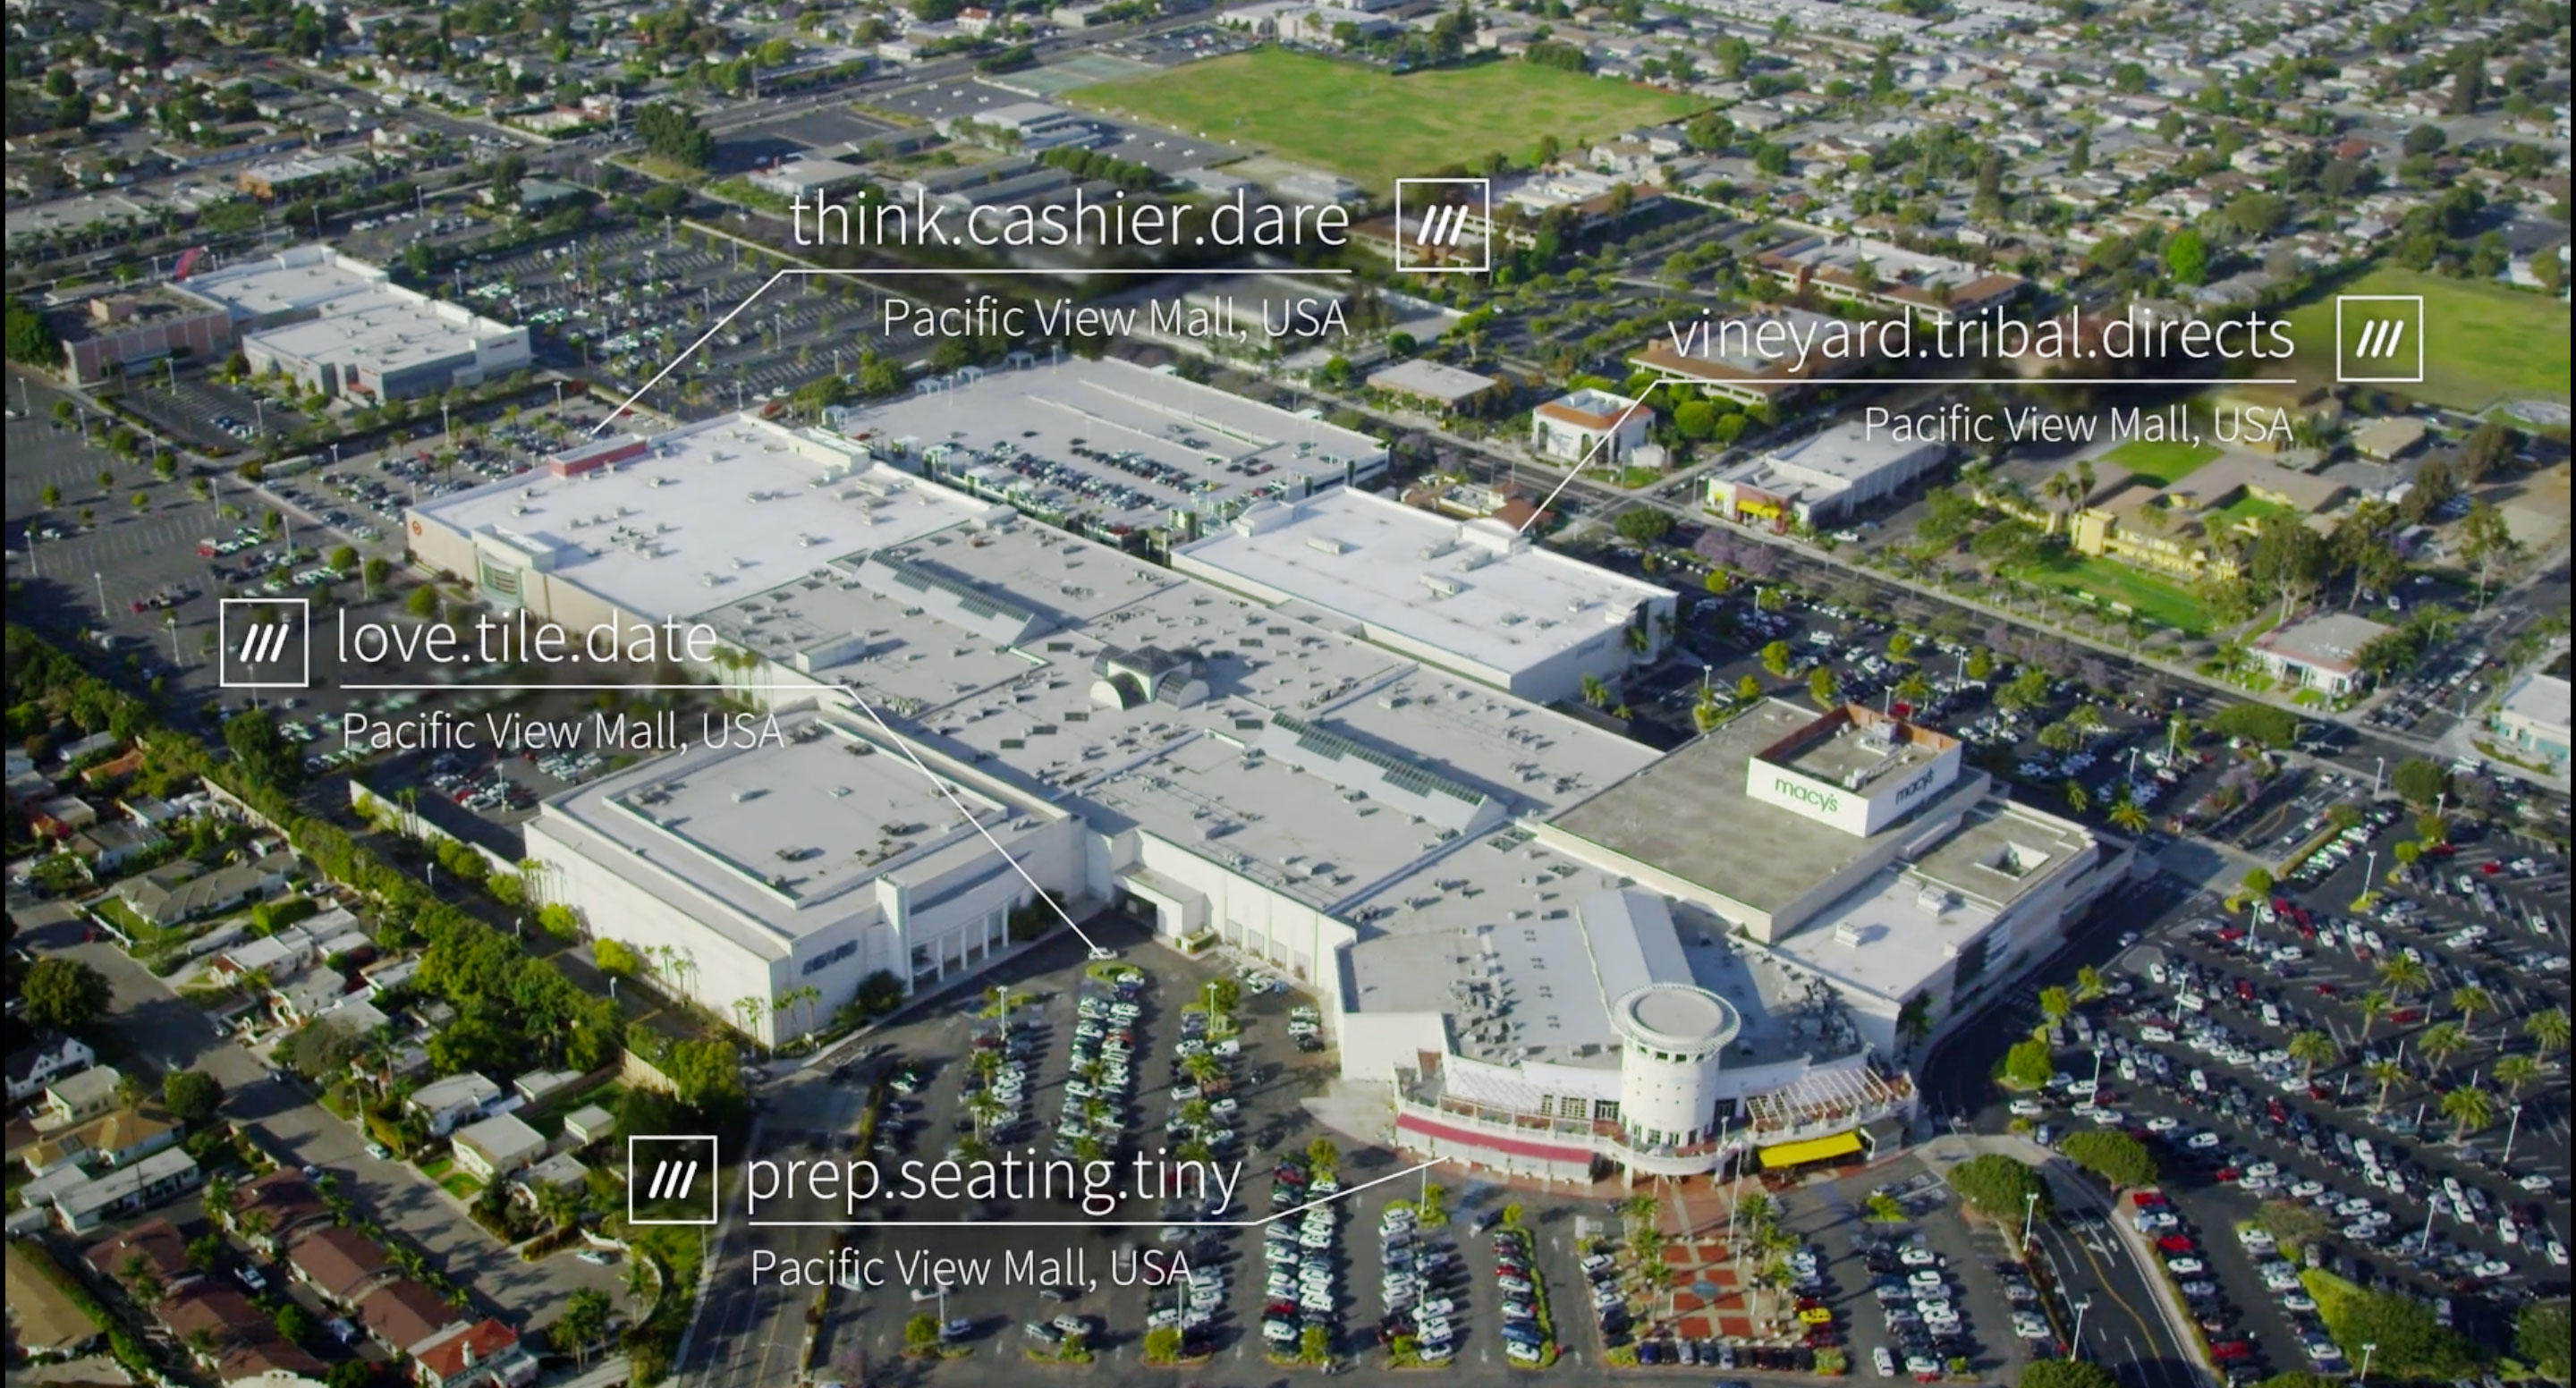 What3words can help you tell your friends which mall entrance to meet at.